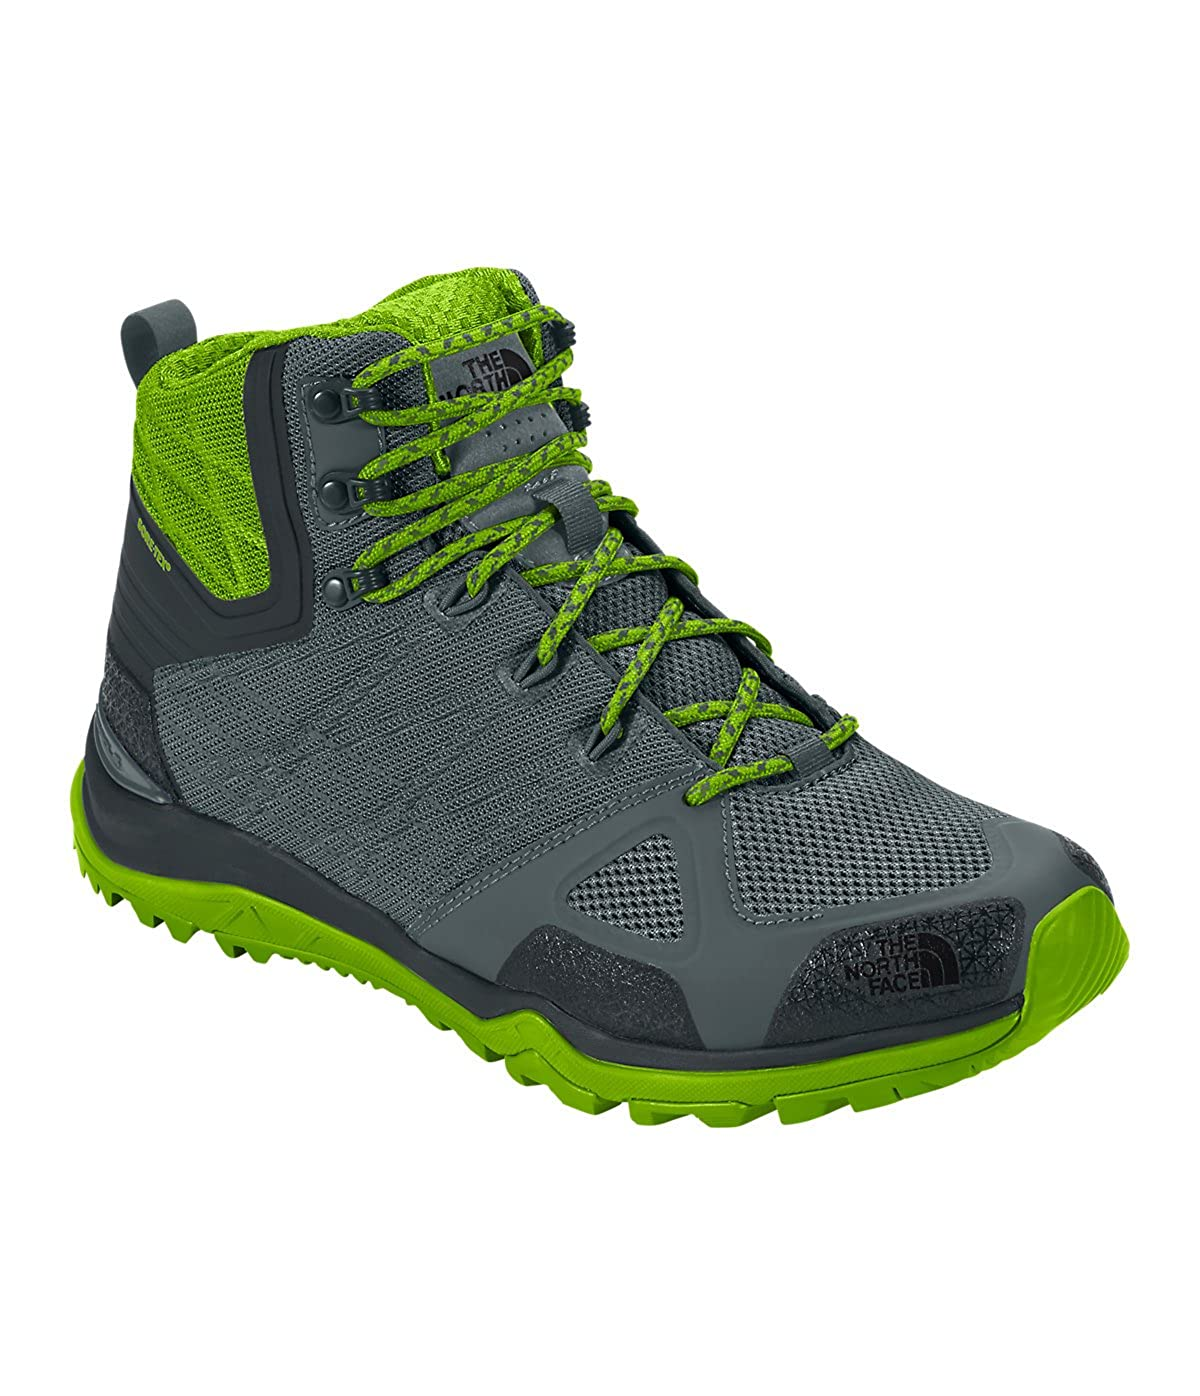 86e8ec9cf5128 THE NORTH FACE Men s M Ultra Fastpack II Mid GTX Hiking Shoes Green Size   6  Amazon.co.uk  Shoes   Bags